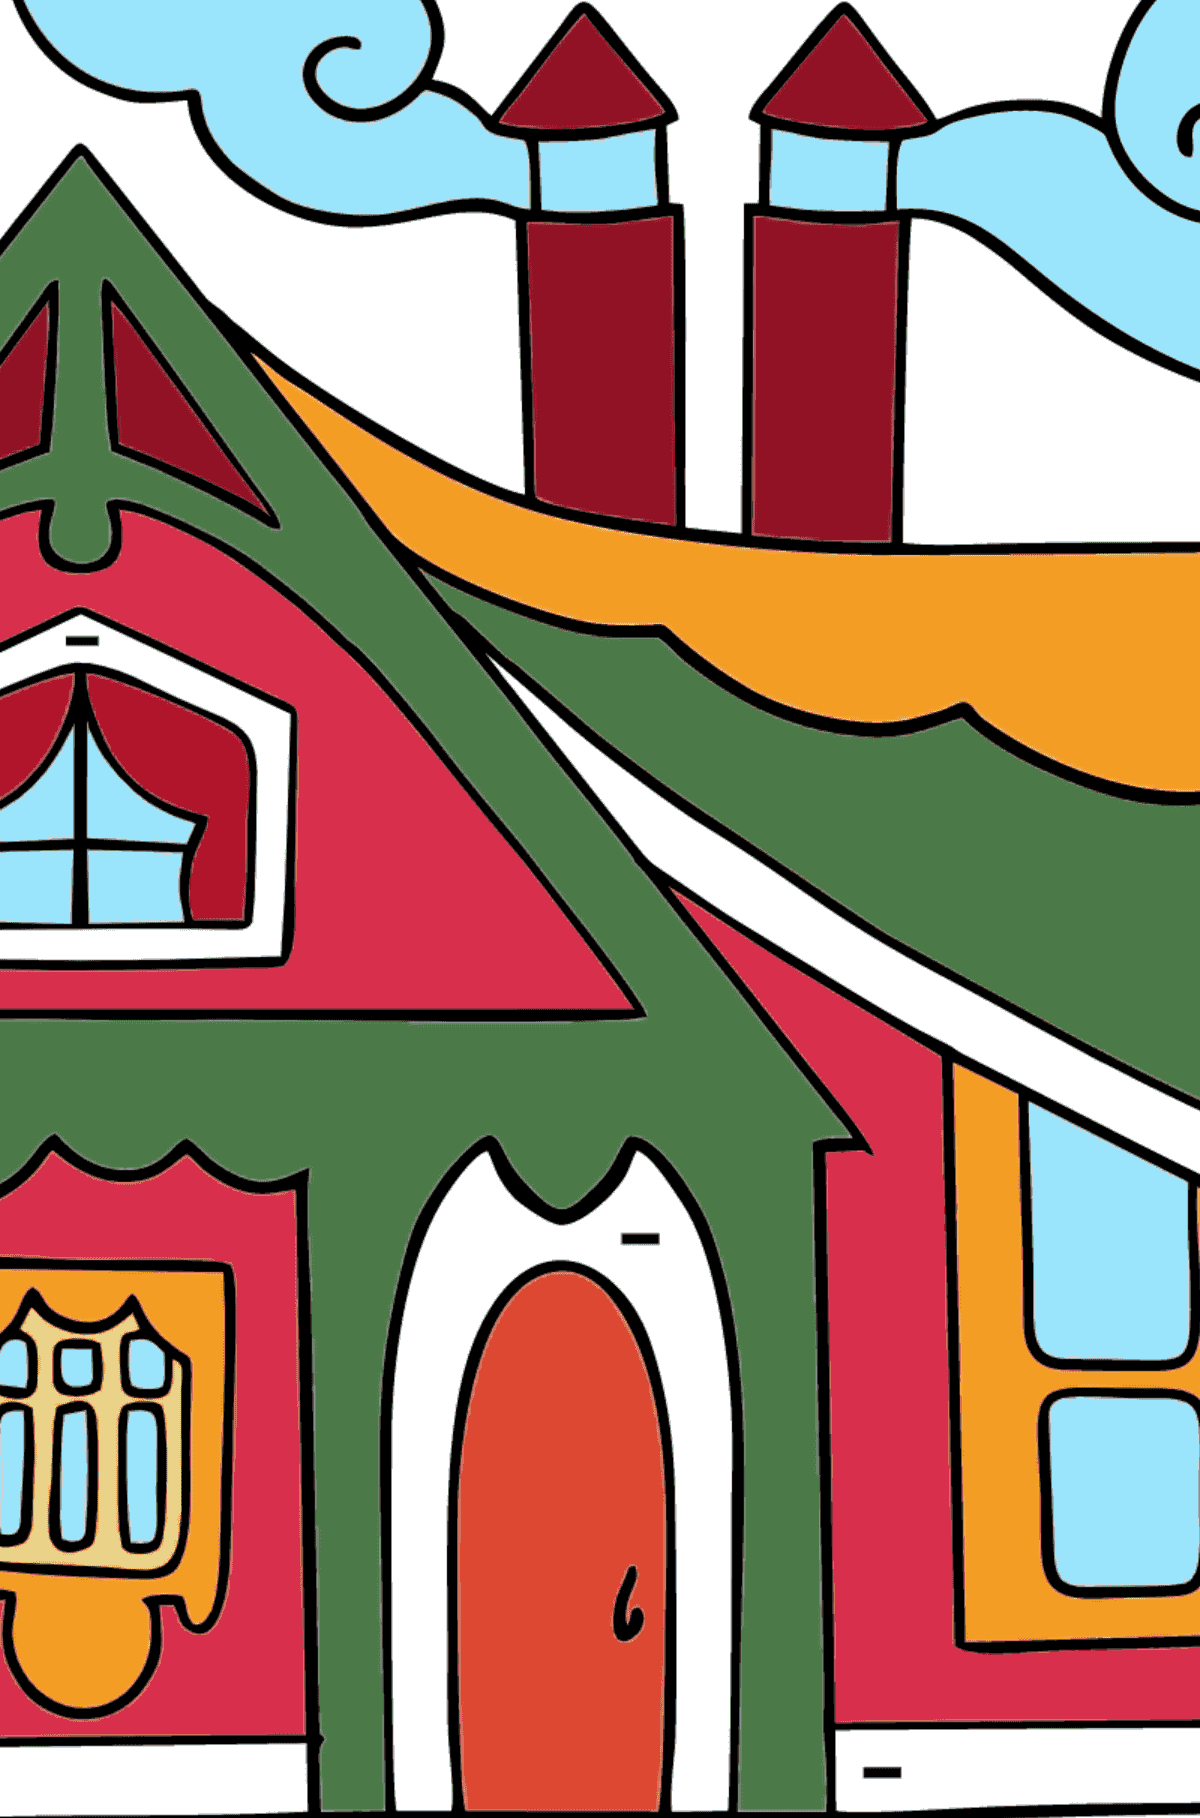 Complex Coloring Page - A Tiny House for Kids  - Color by Special Symbols